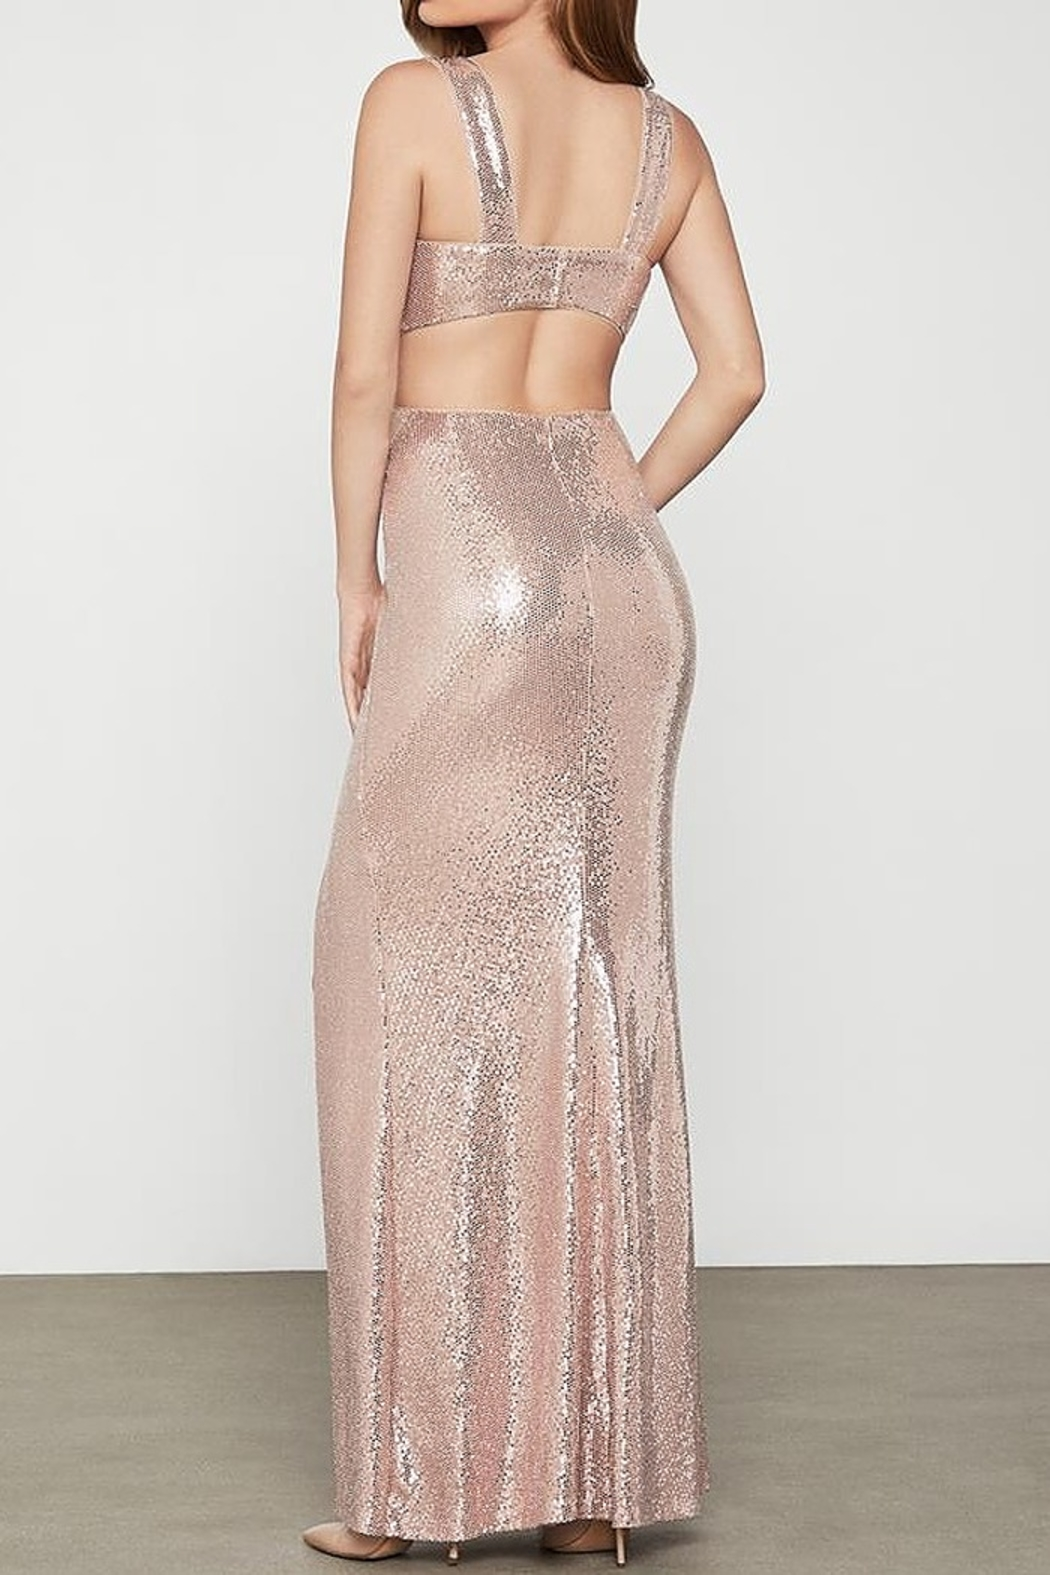 BCBG MAXAZRIA Metallic Cut-out Gown with Slit - Side Cropped Image